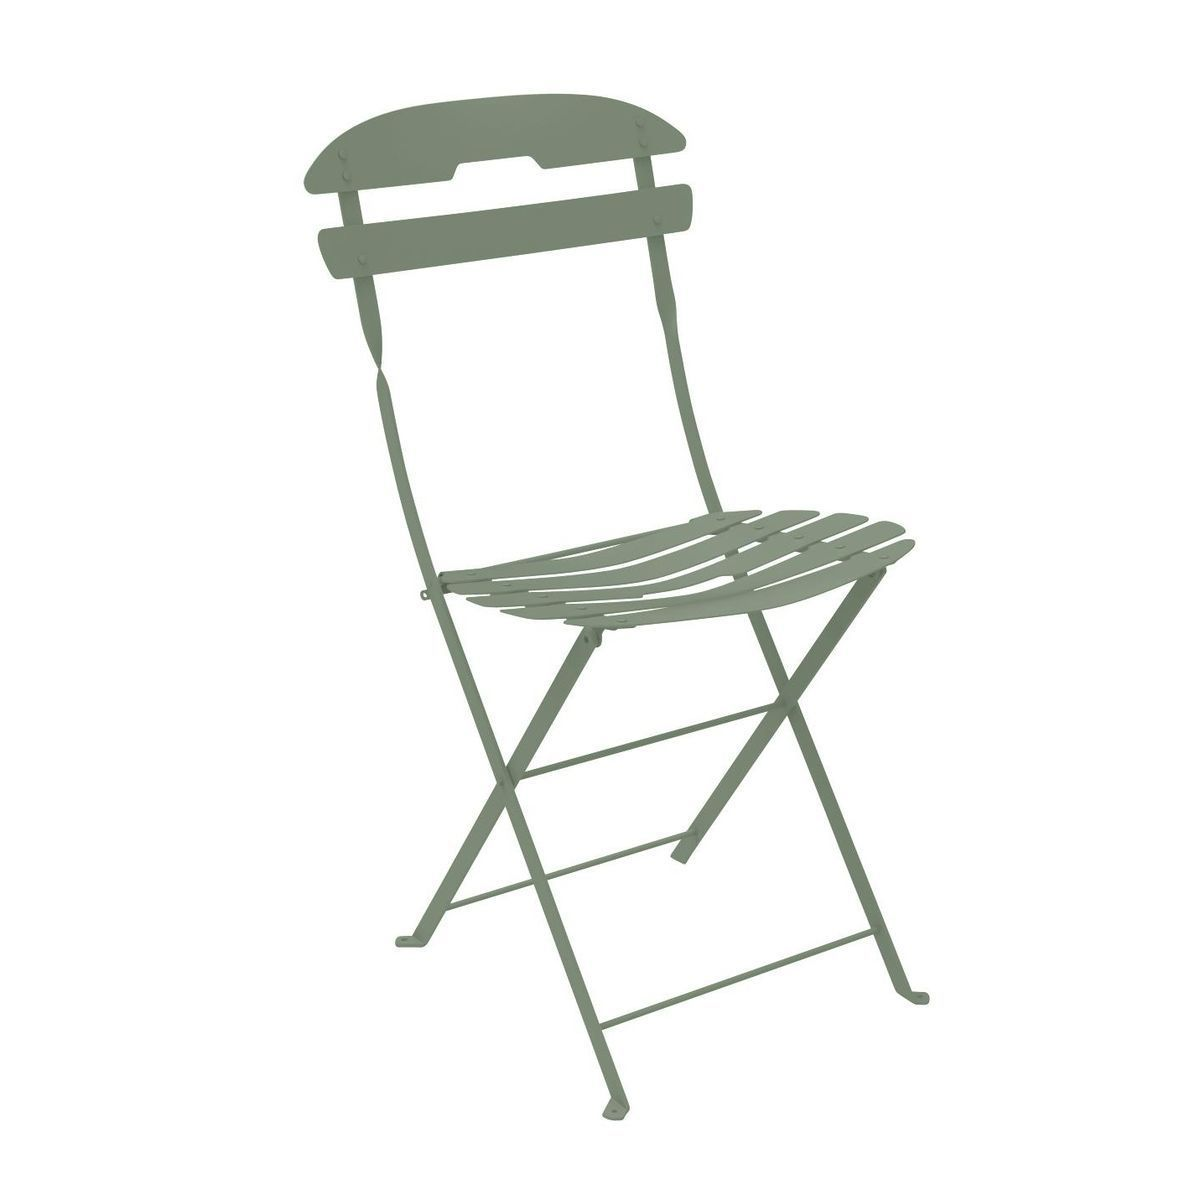 Fermob La Mome Garden Chair Folding Chair Green Cactus Hle Steel Seat